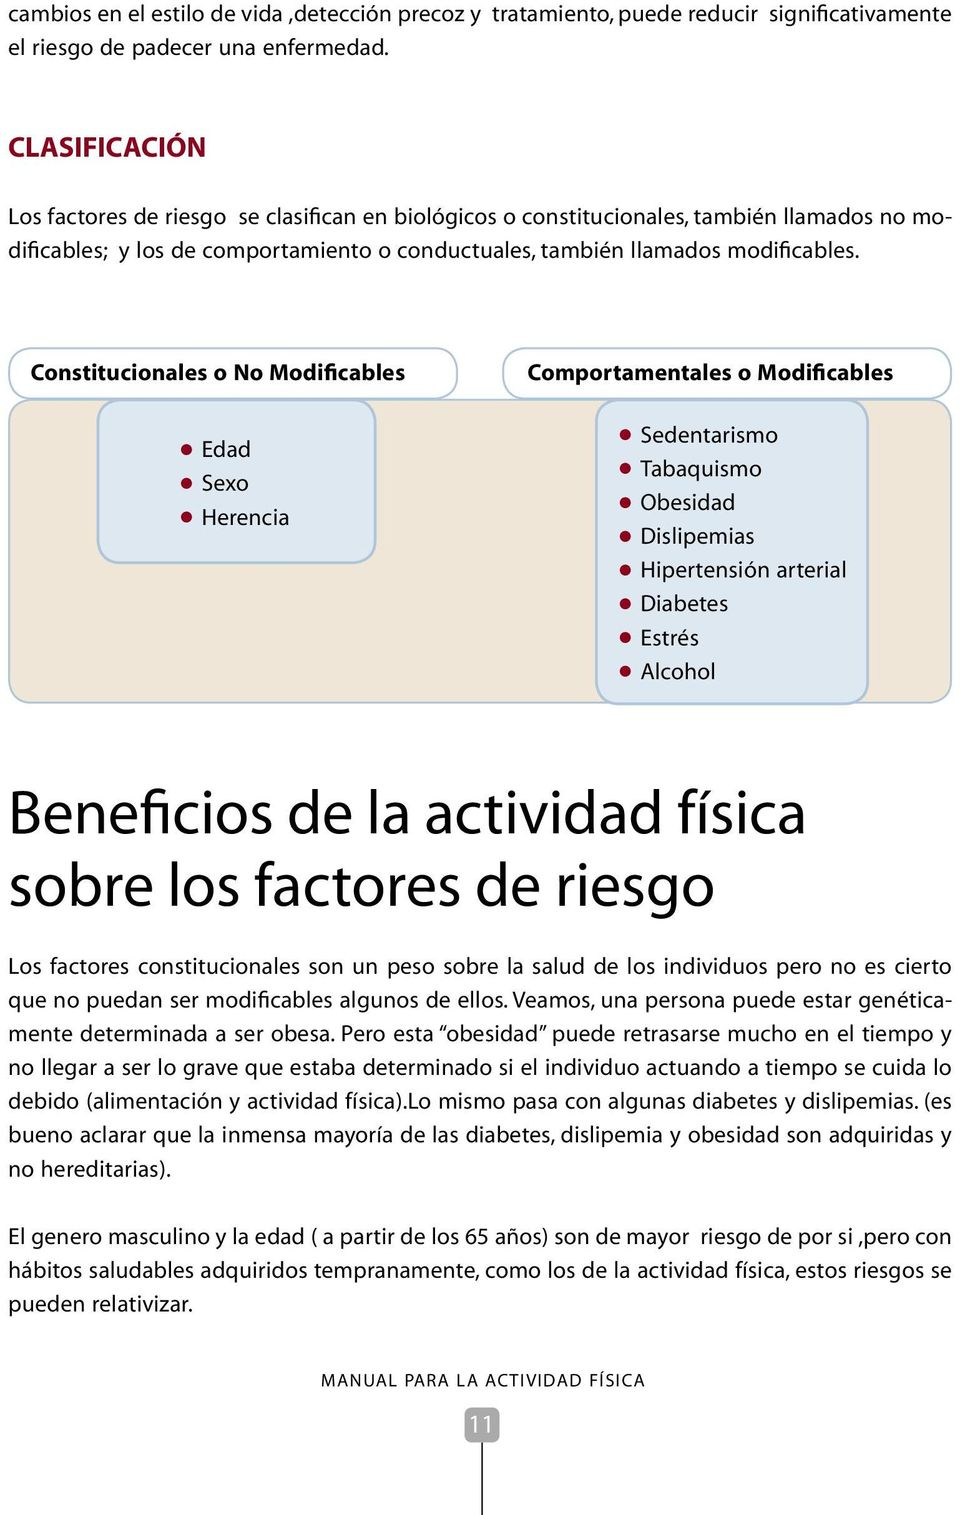 Constitucionales o No Modificables Edad Sexo Herencia Comportamentales o Modificables Sedentarismo Tabaquismo Obesidad Dislipemias Hipertensión arterial Diabetes Estrés Alcohol Beneficios de la